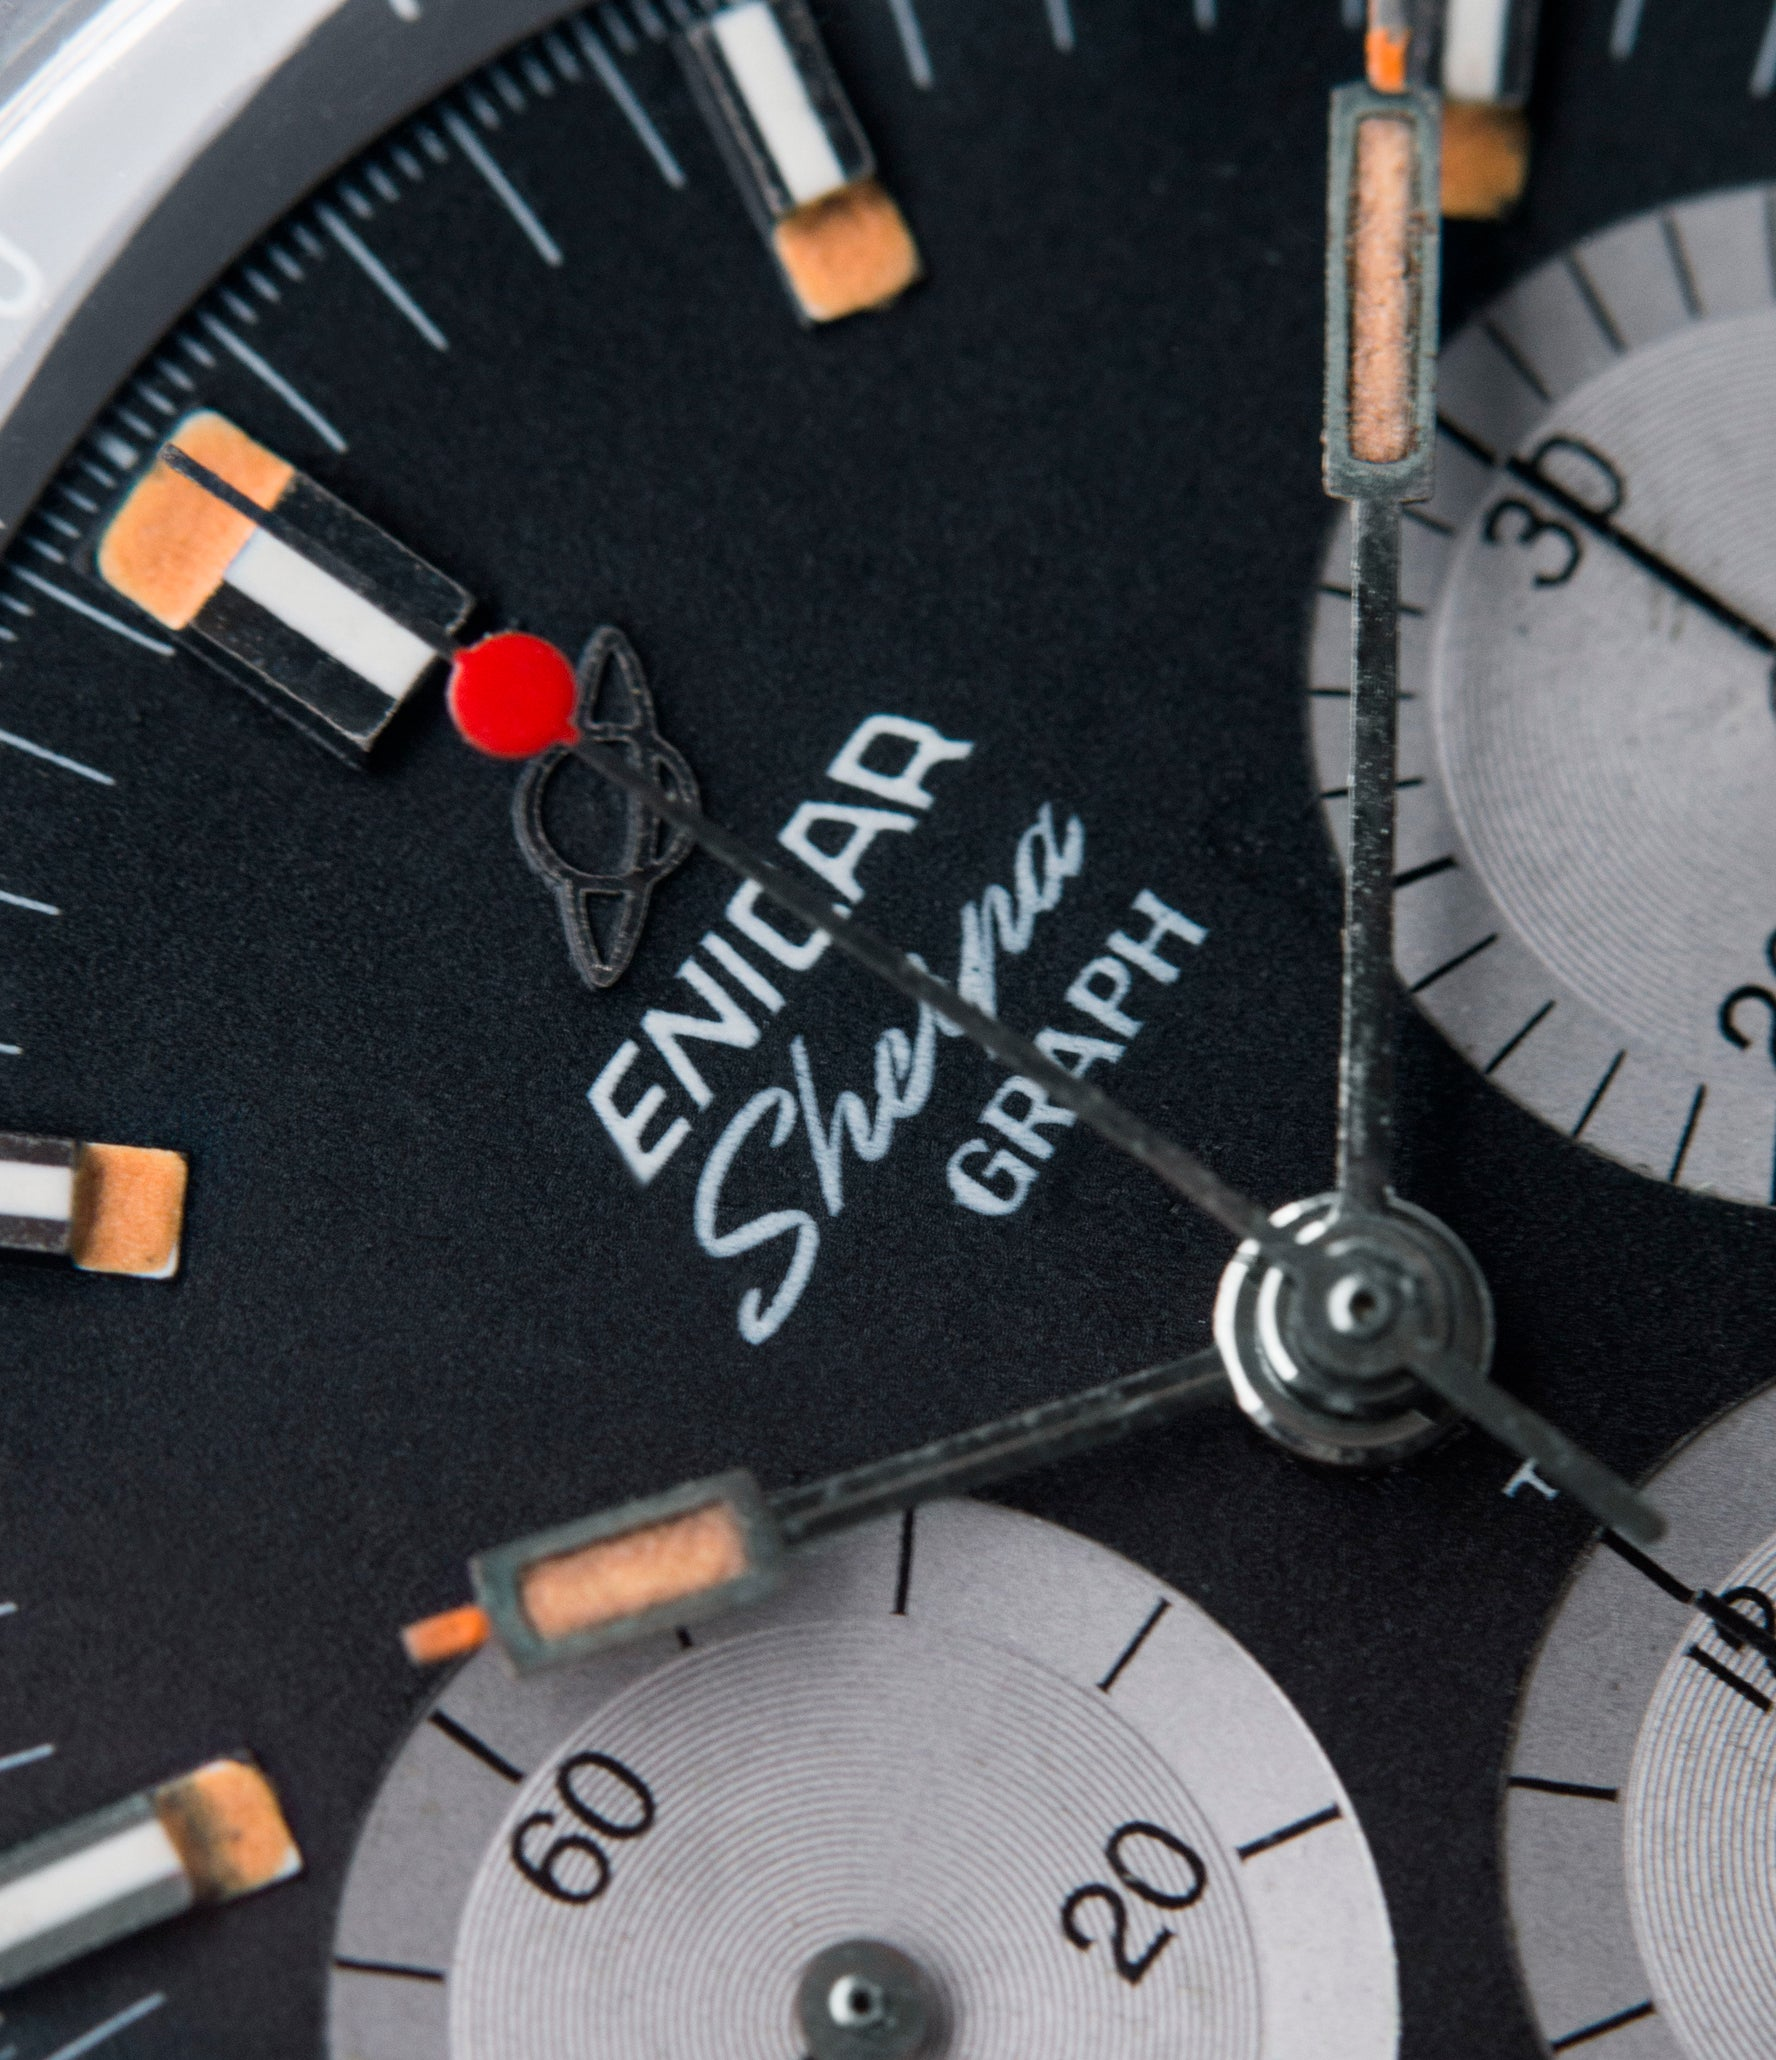 072-02-01 Jim Clark Sherpa Graph 300 Enicar MKIII black dial steel vintage chronograph watch at A Collected Man London UK specialist of rare watches